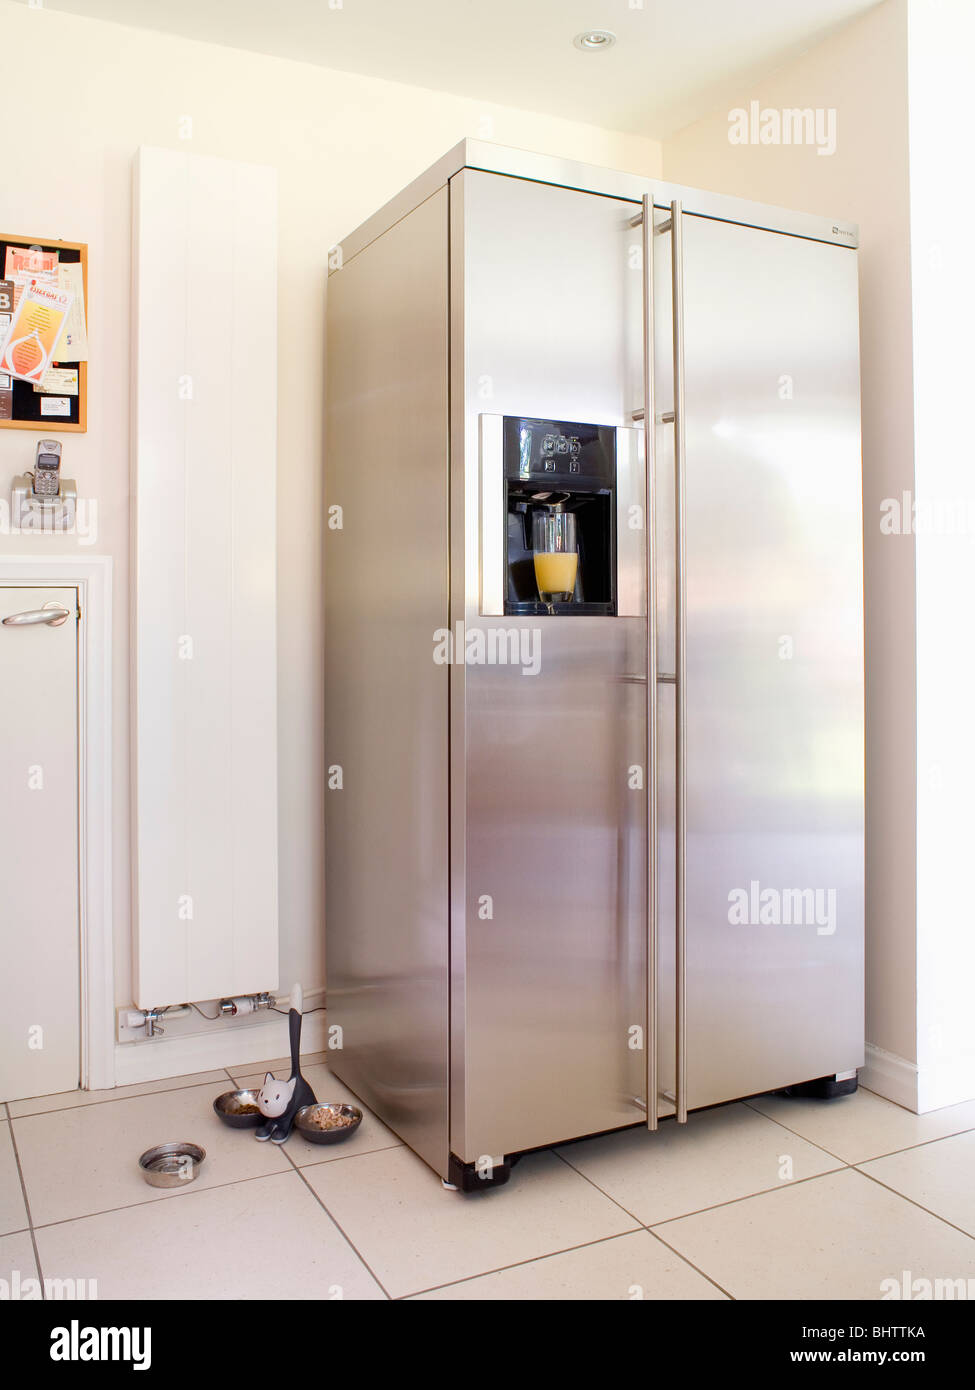 Charming Large American Fridge Freezer Part - 14: Large American-style Stainless-steel Fridge-freezer Beside Vertical White  Radiator In Modern Kitchen